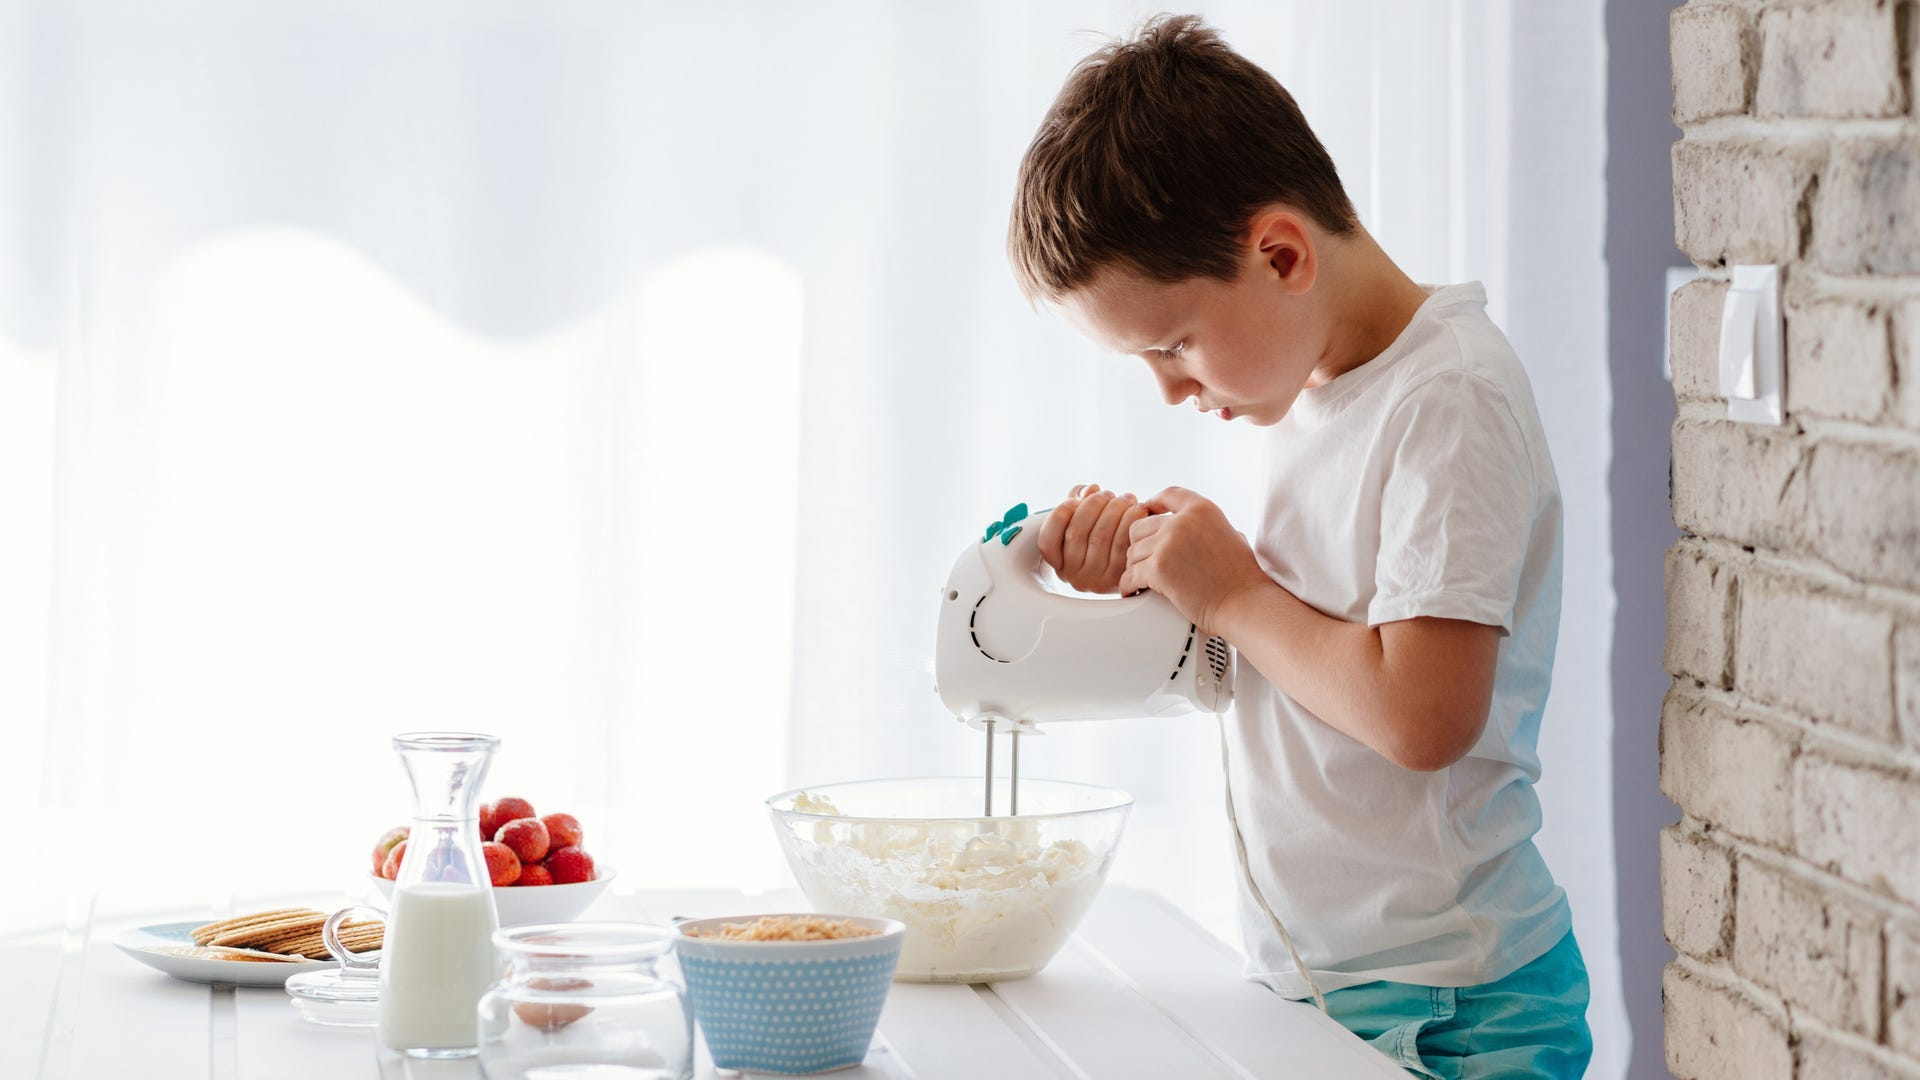 A boy uses a hand mixer to mix ingredients in a big glass bowl in the kitchen.